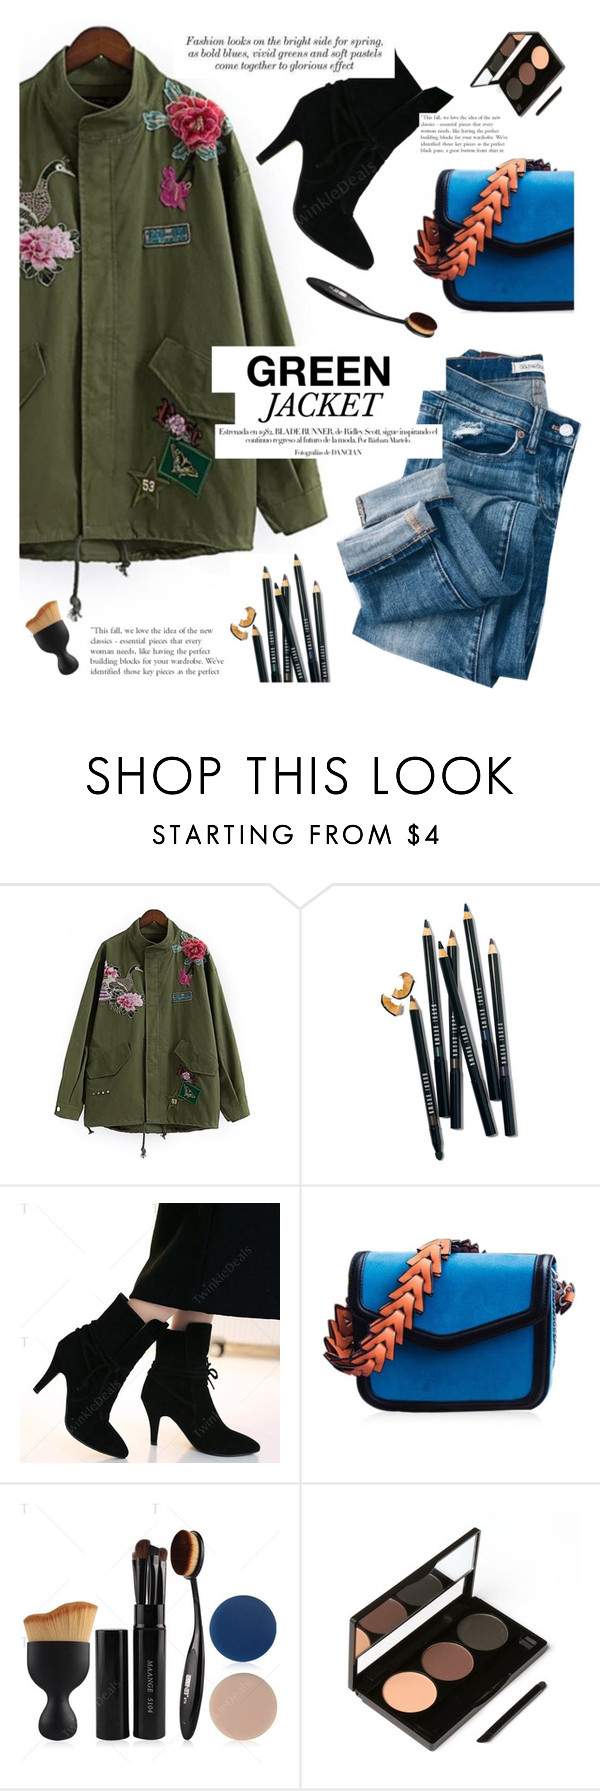 """TD"" by yexyka ❤ liked on Polyvore featuring Bobbi Brown Cosmetics"